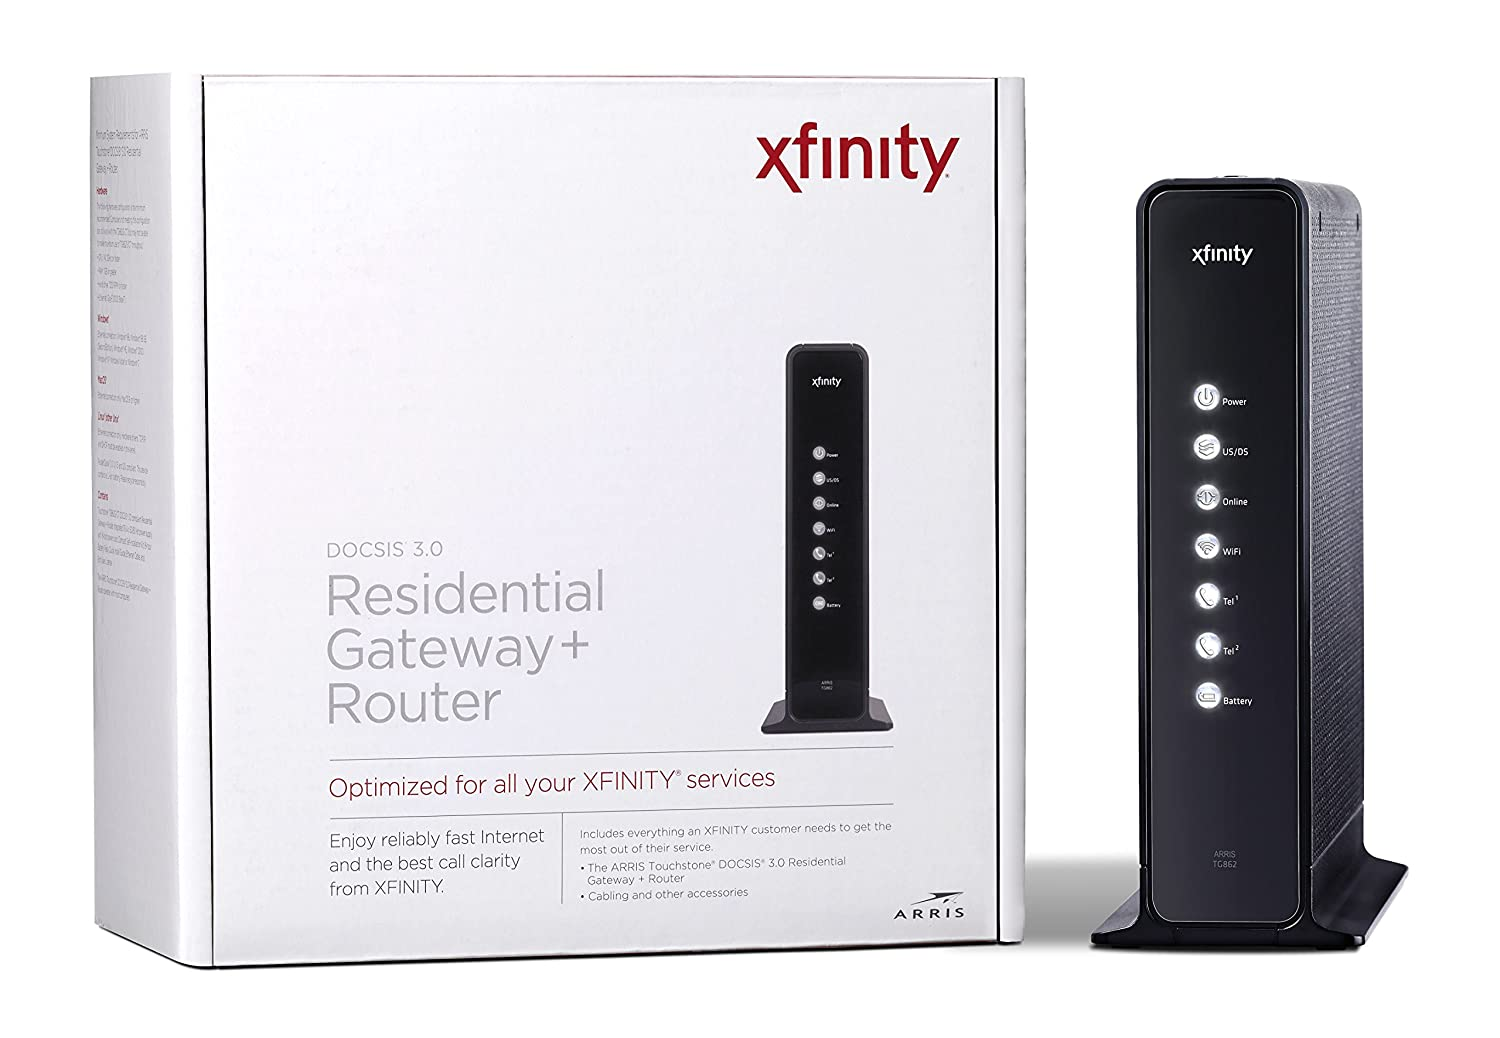 Amazon.com: ARRIS DOCSIS 3.0 Residential Gateway with 802.11n/ 4 GigaPort  Router/ 2-Voice Lines Certified with Comcast (TG862G-CT): Computers &  Accessories